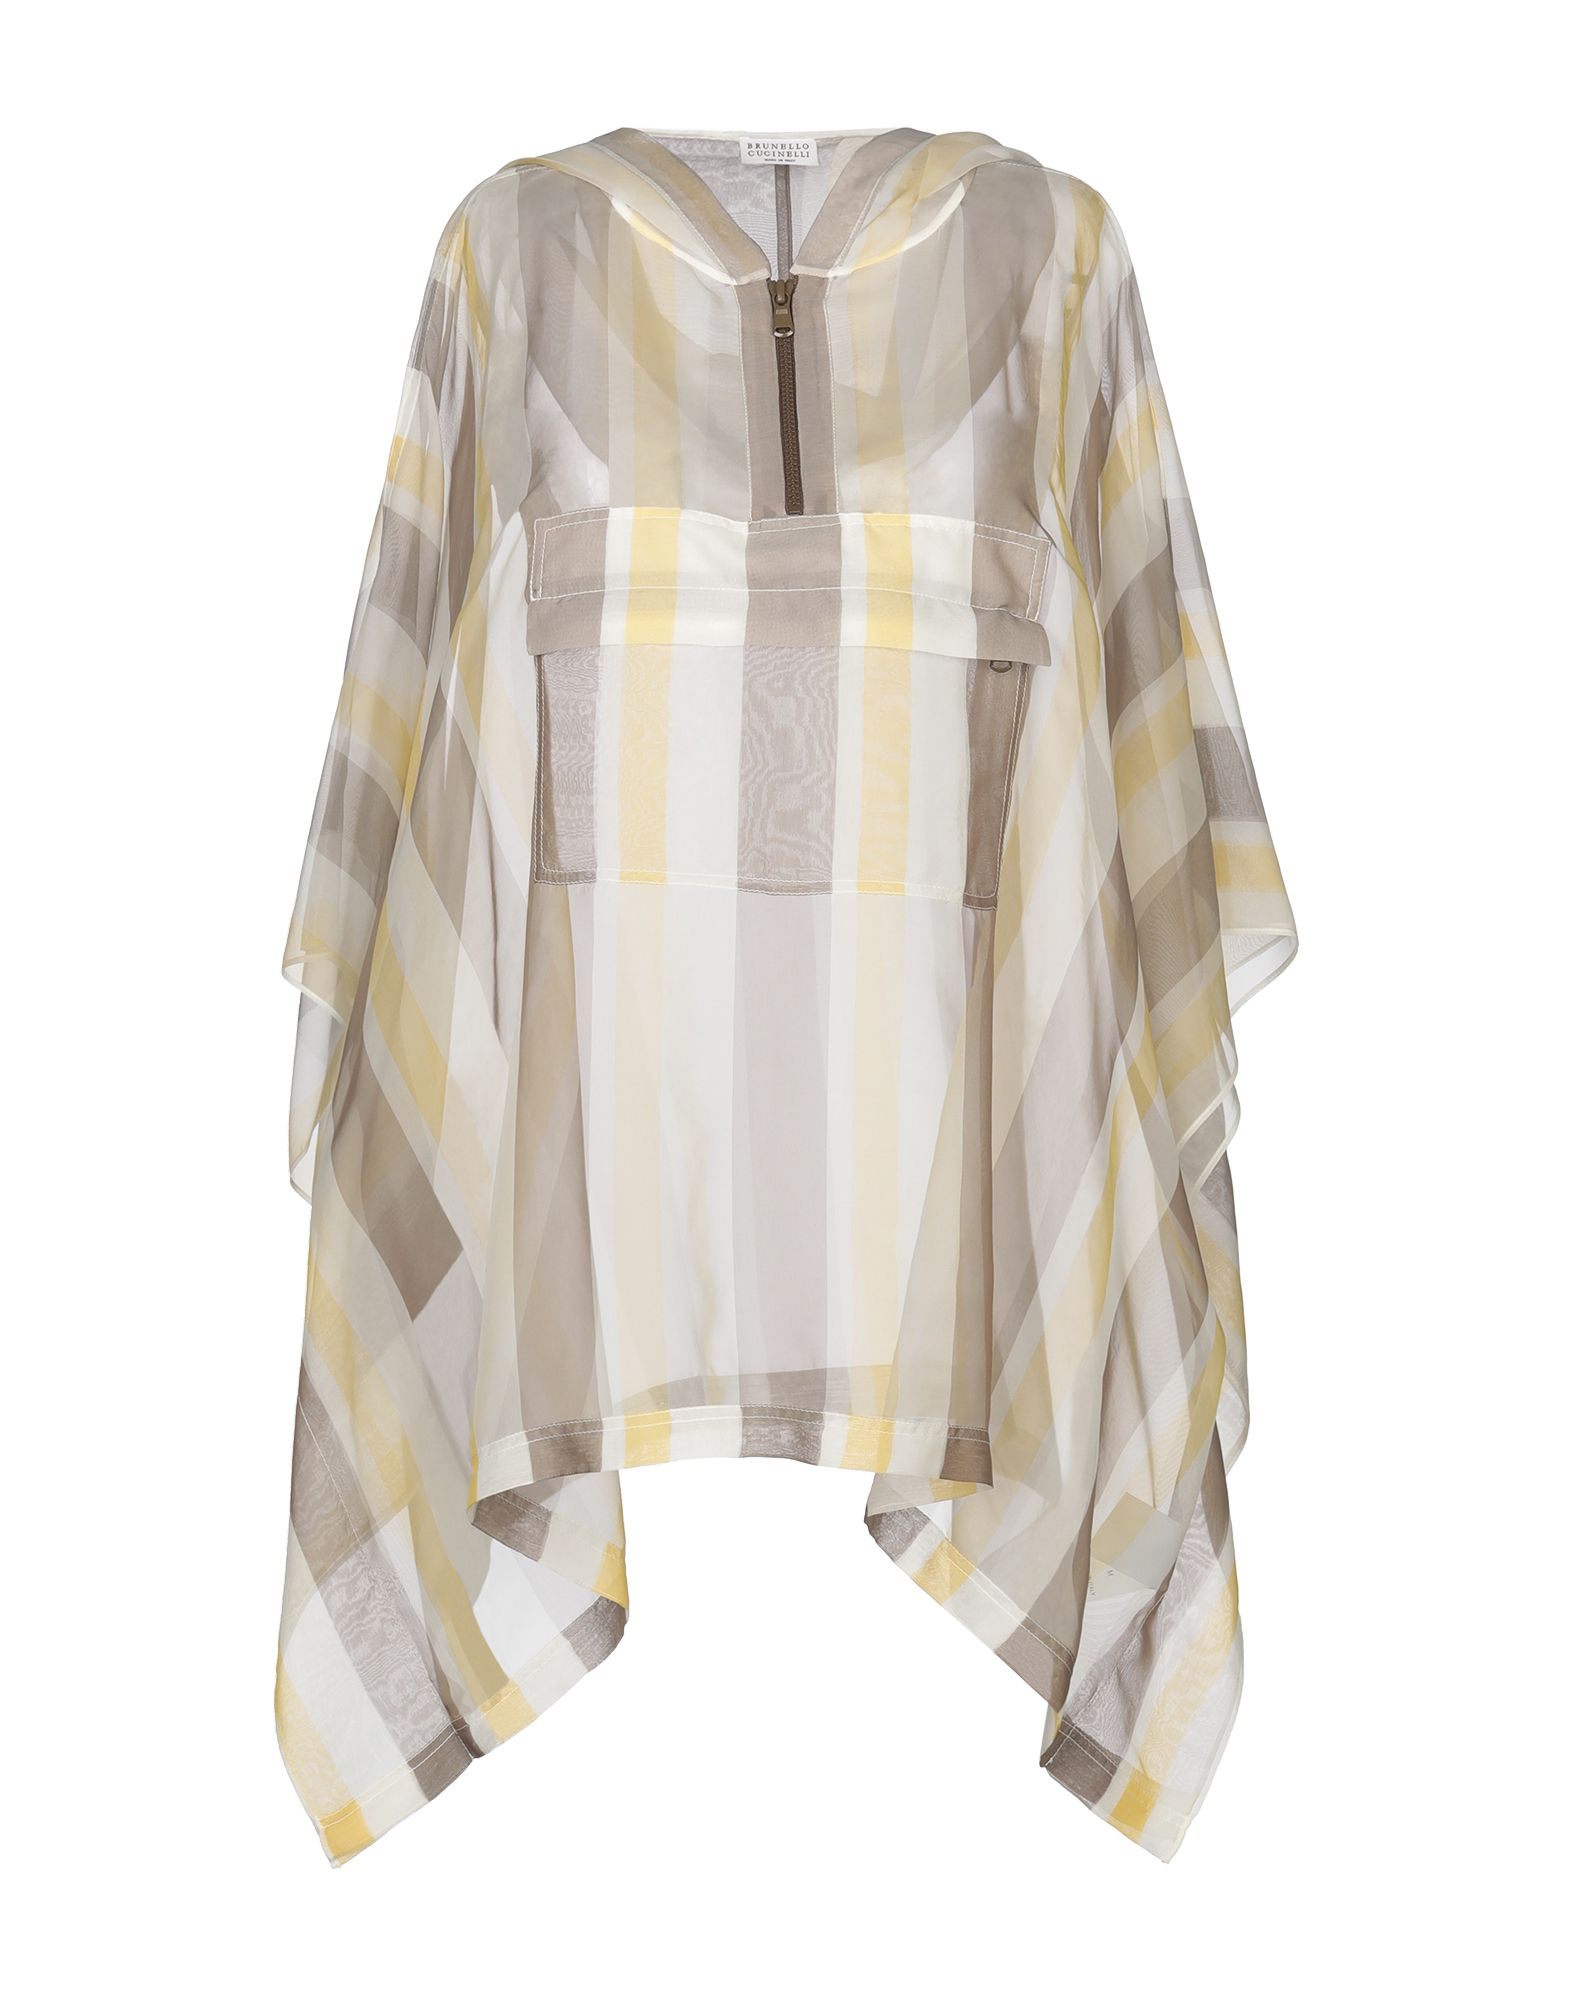 BRUNELLO CUCINELLI Capes & ponchos. organza, metal applications, stripes, single-breasted, hooded collar, single pocket, unlined, short sleeves. 100% Silk, Acetate, Brass